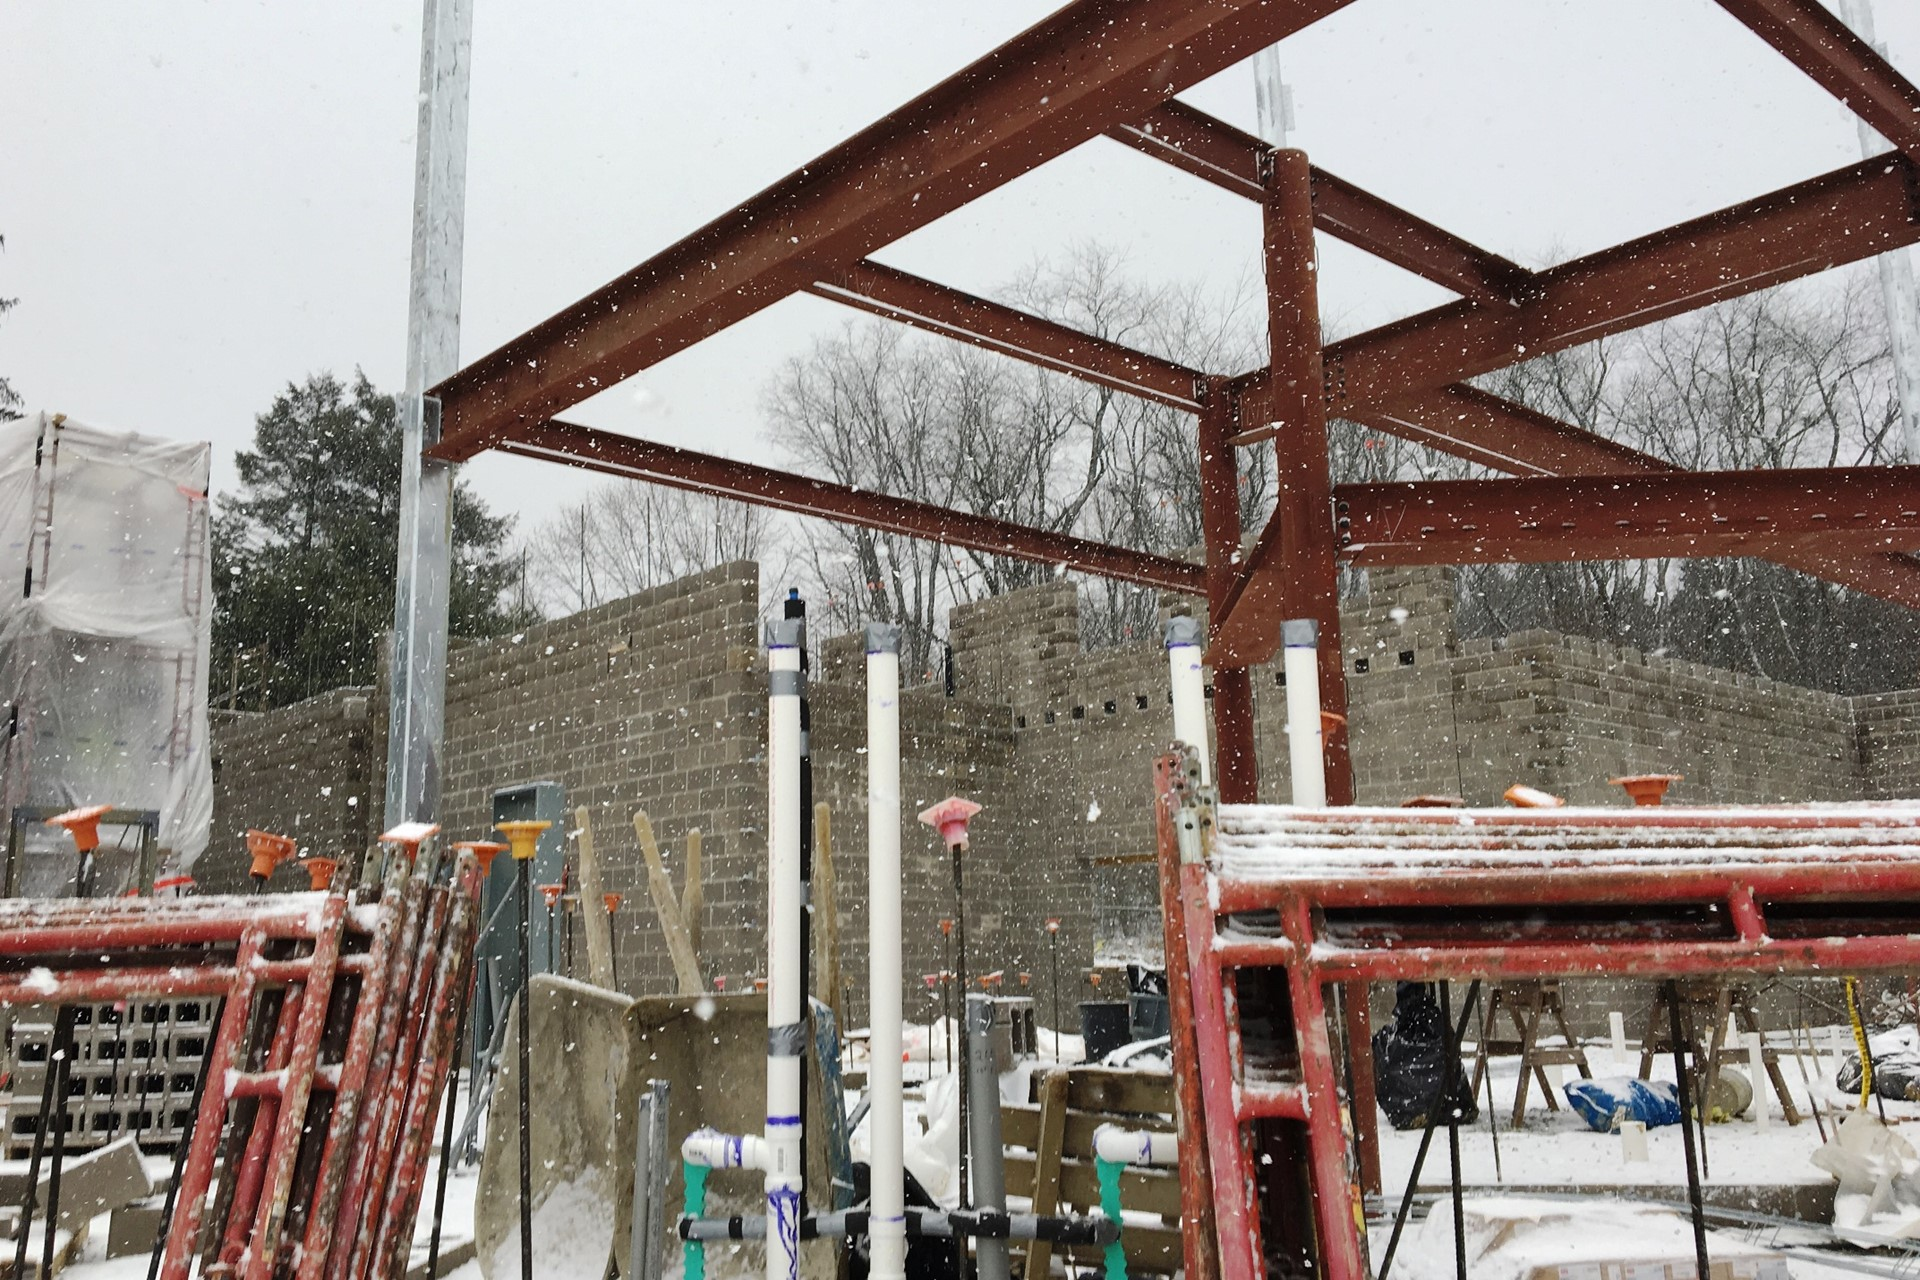 New school construction site: Steel beams erected in place